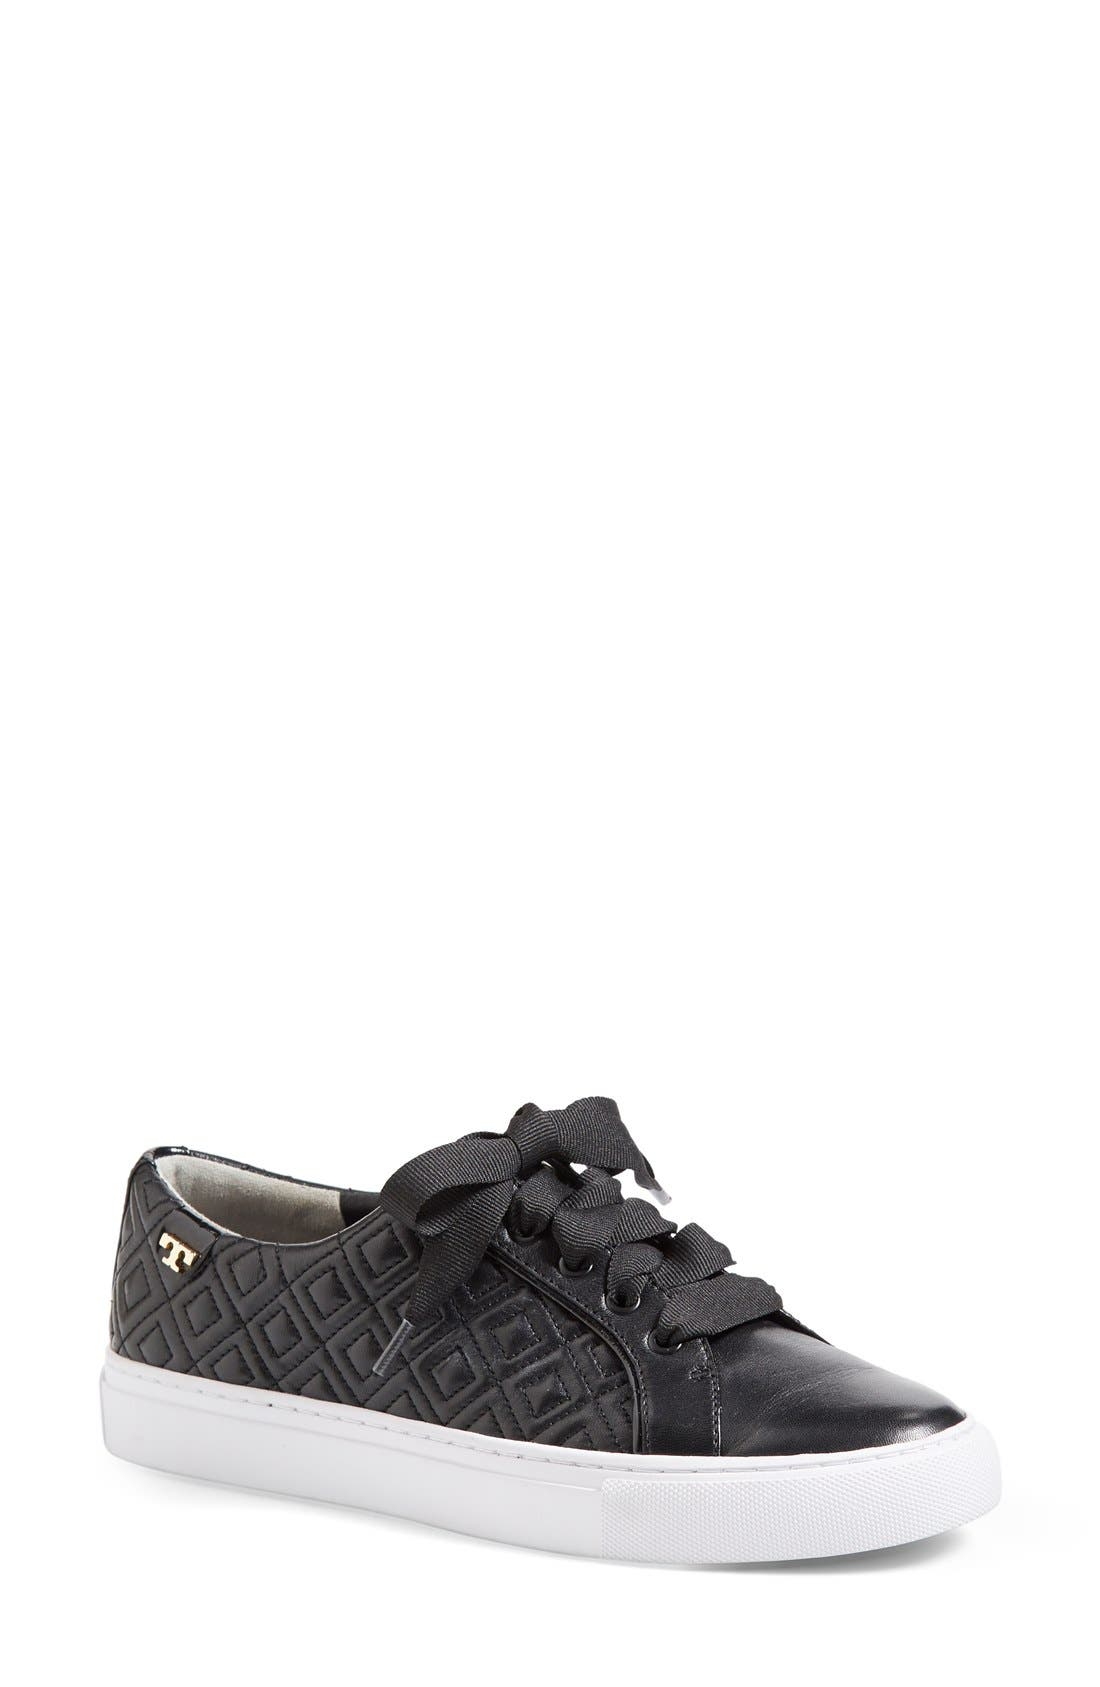 Tory Burch 'Marion' Quilted Sneaker